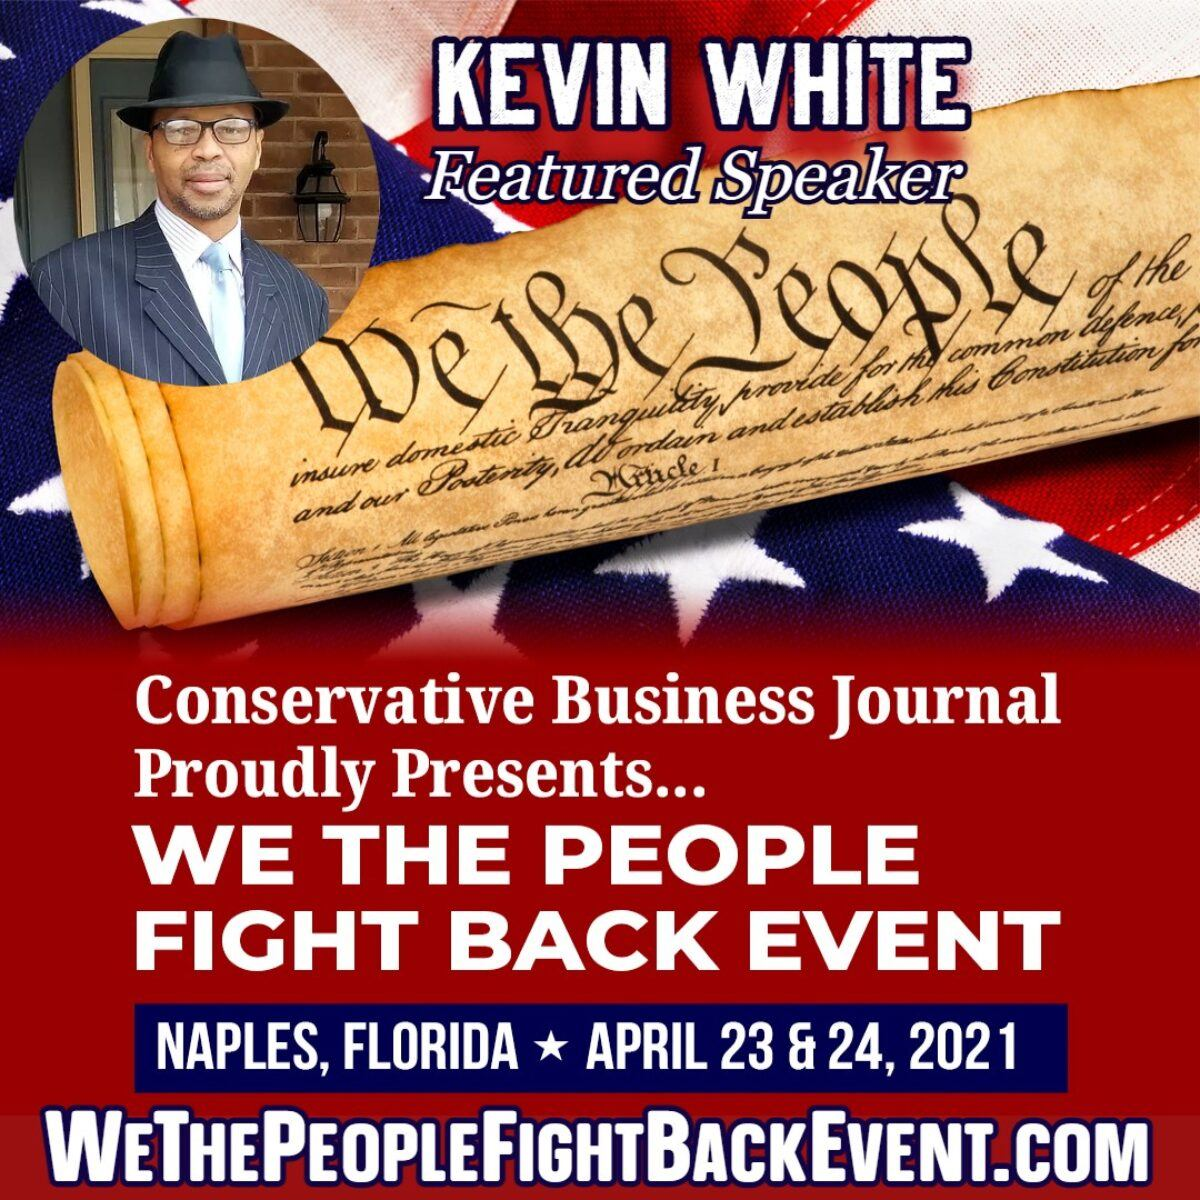 kevin white we the people fight back event